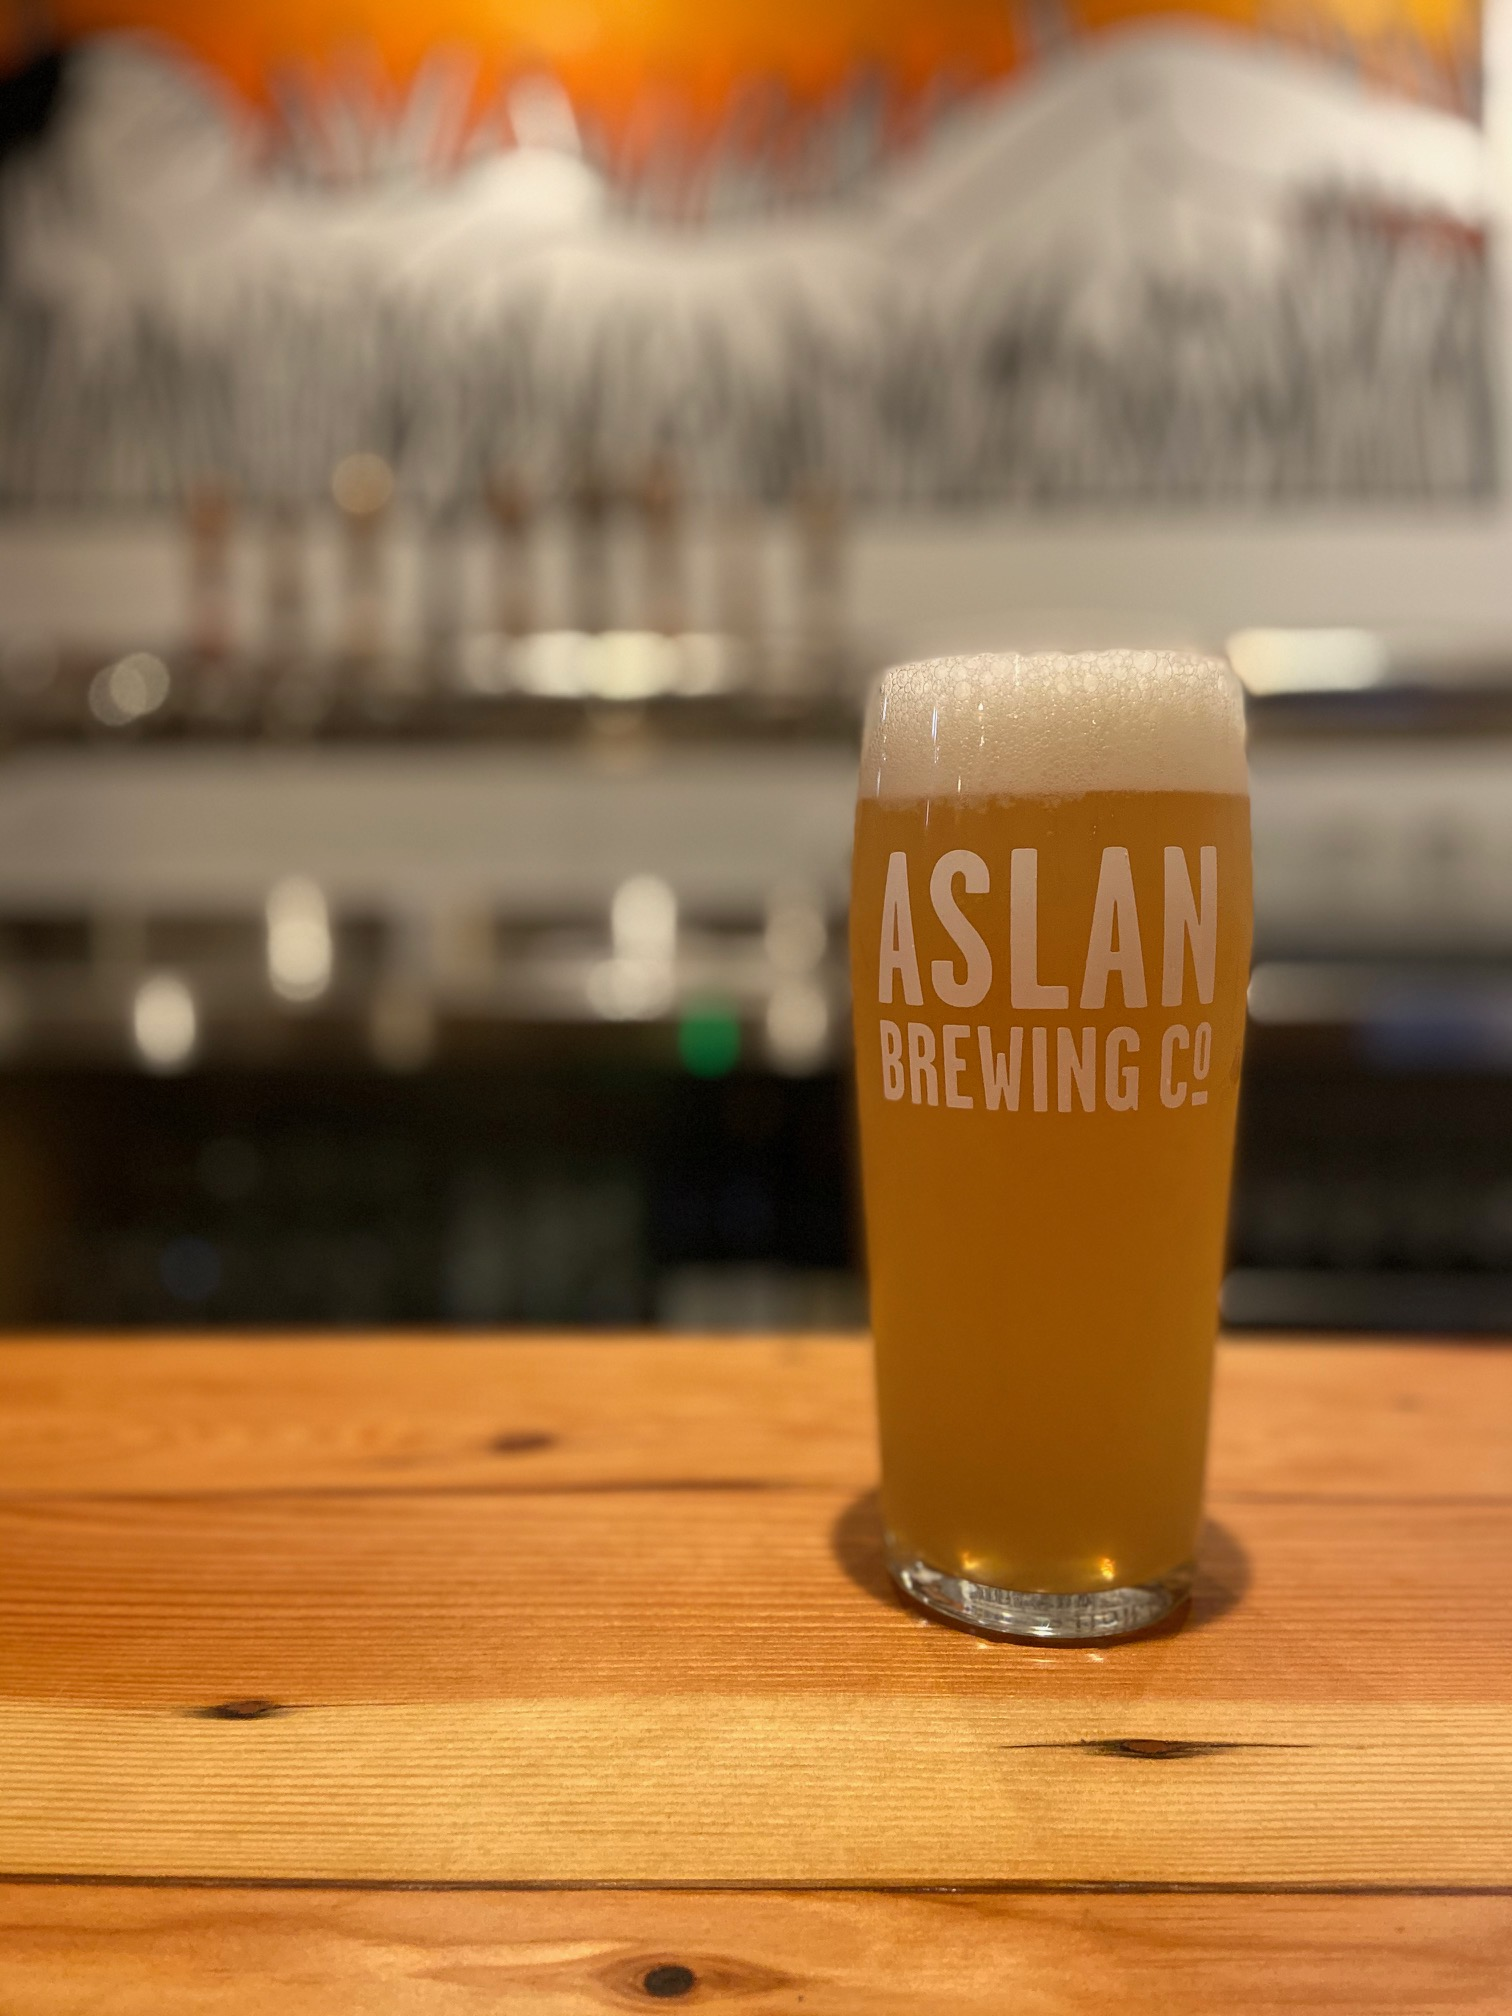 A nod to Nirvana, Floyd the Barber Nordic Pale Ale at Aslan Brewing Seattle.